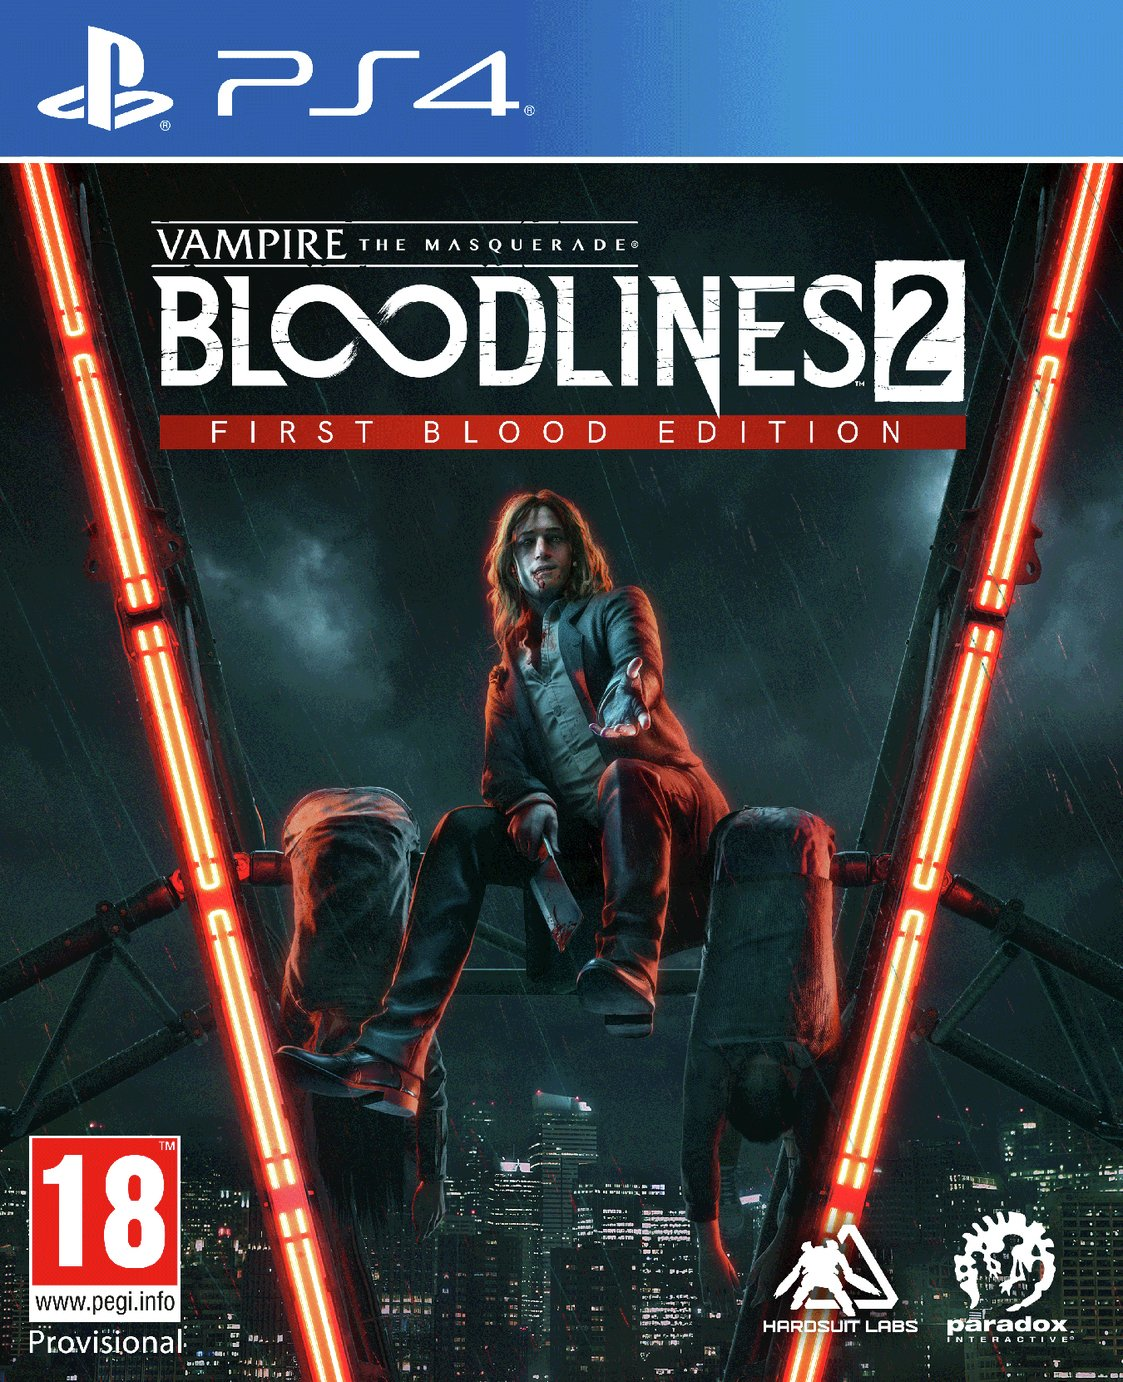 Vampire: The Masquerade Bloodlines 2 PS4 Pre-Order Game